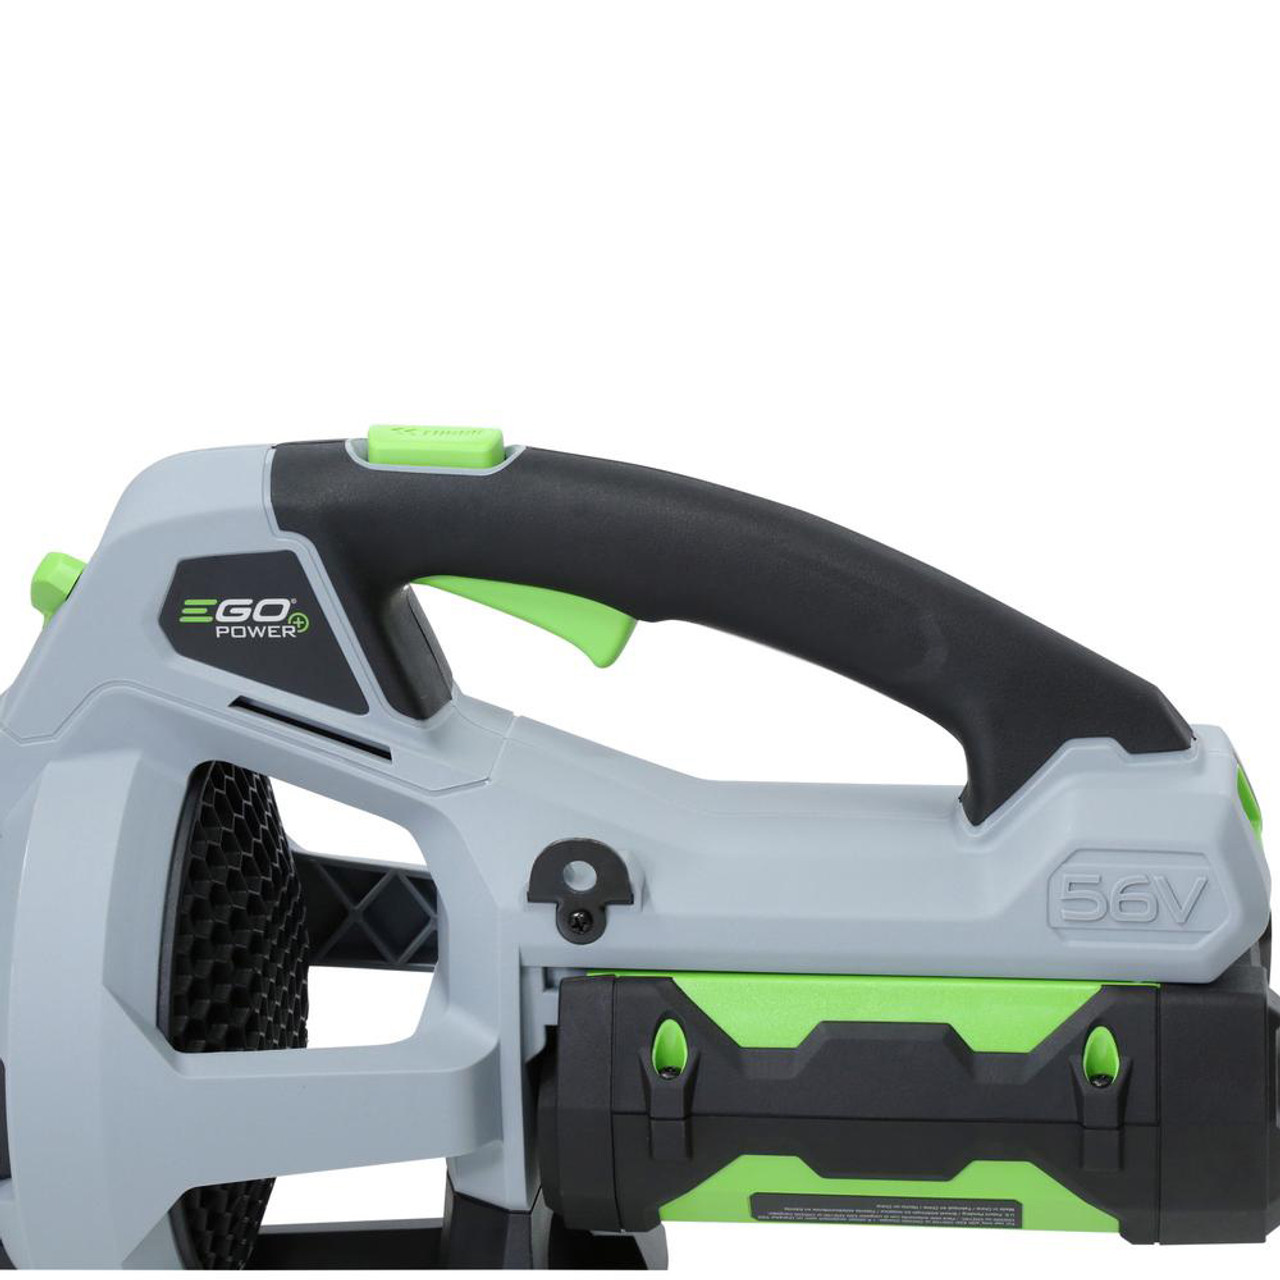 EGO LB5302 Electric, Cordless 56V 530 CFM Handheld Blower w/ 2.5Ah Battery & 210W Charger Image 6